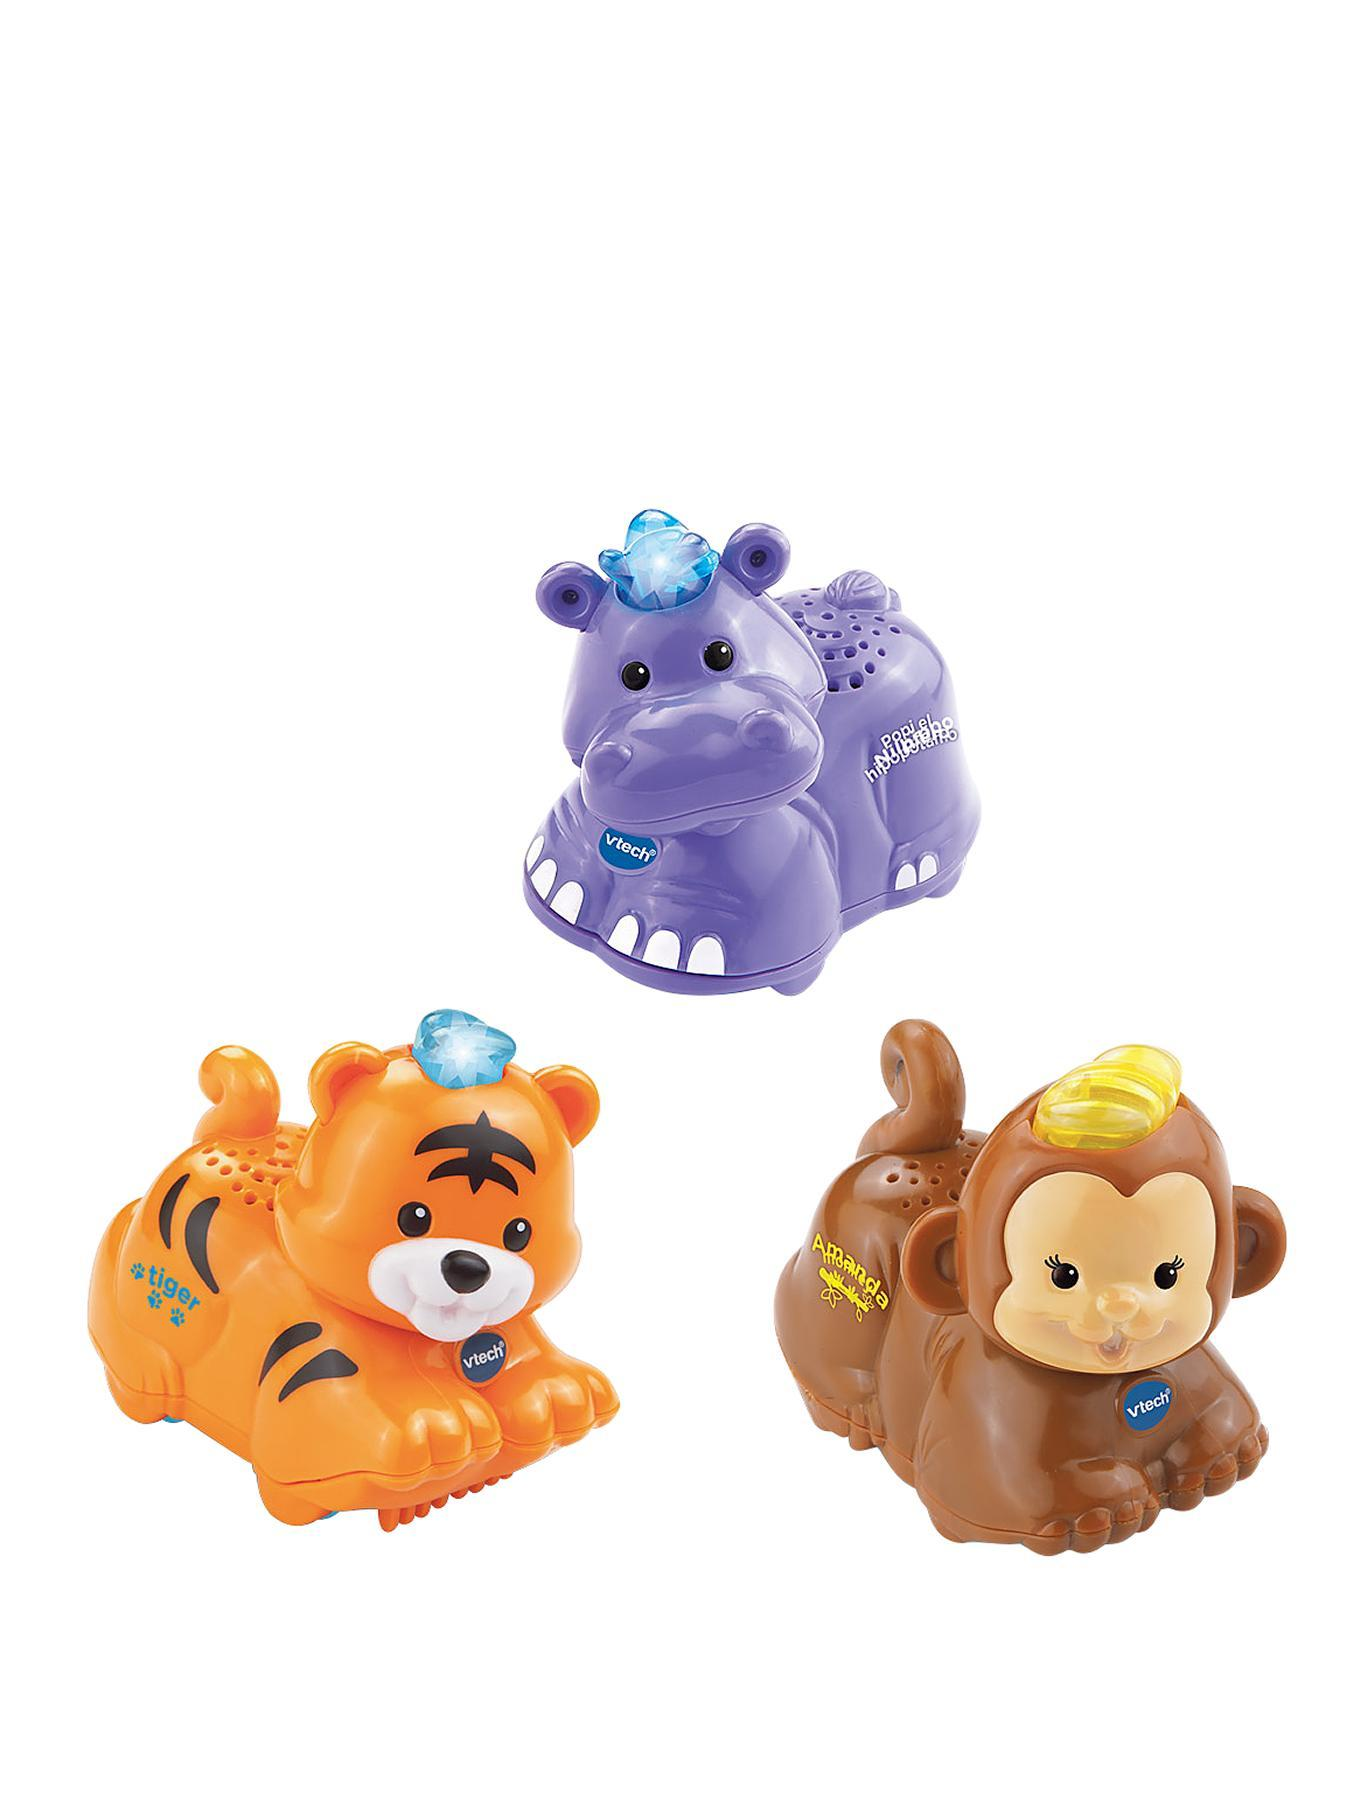 VTech Toot Toot Animals - Tiger, Hippo and Monkey